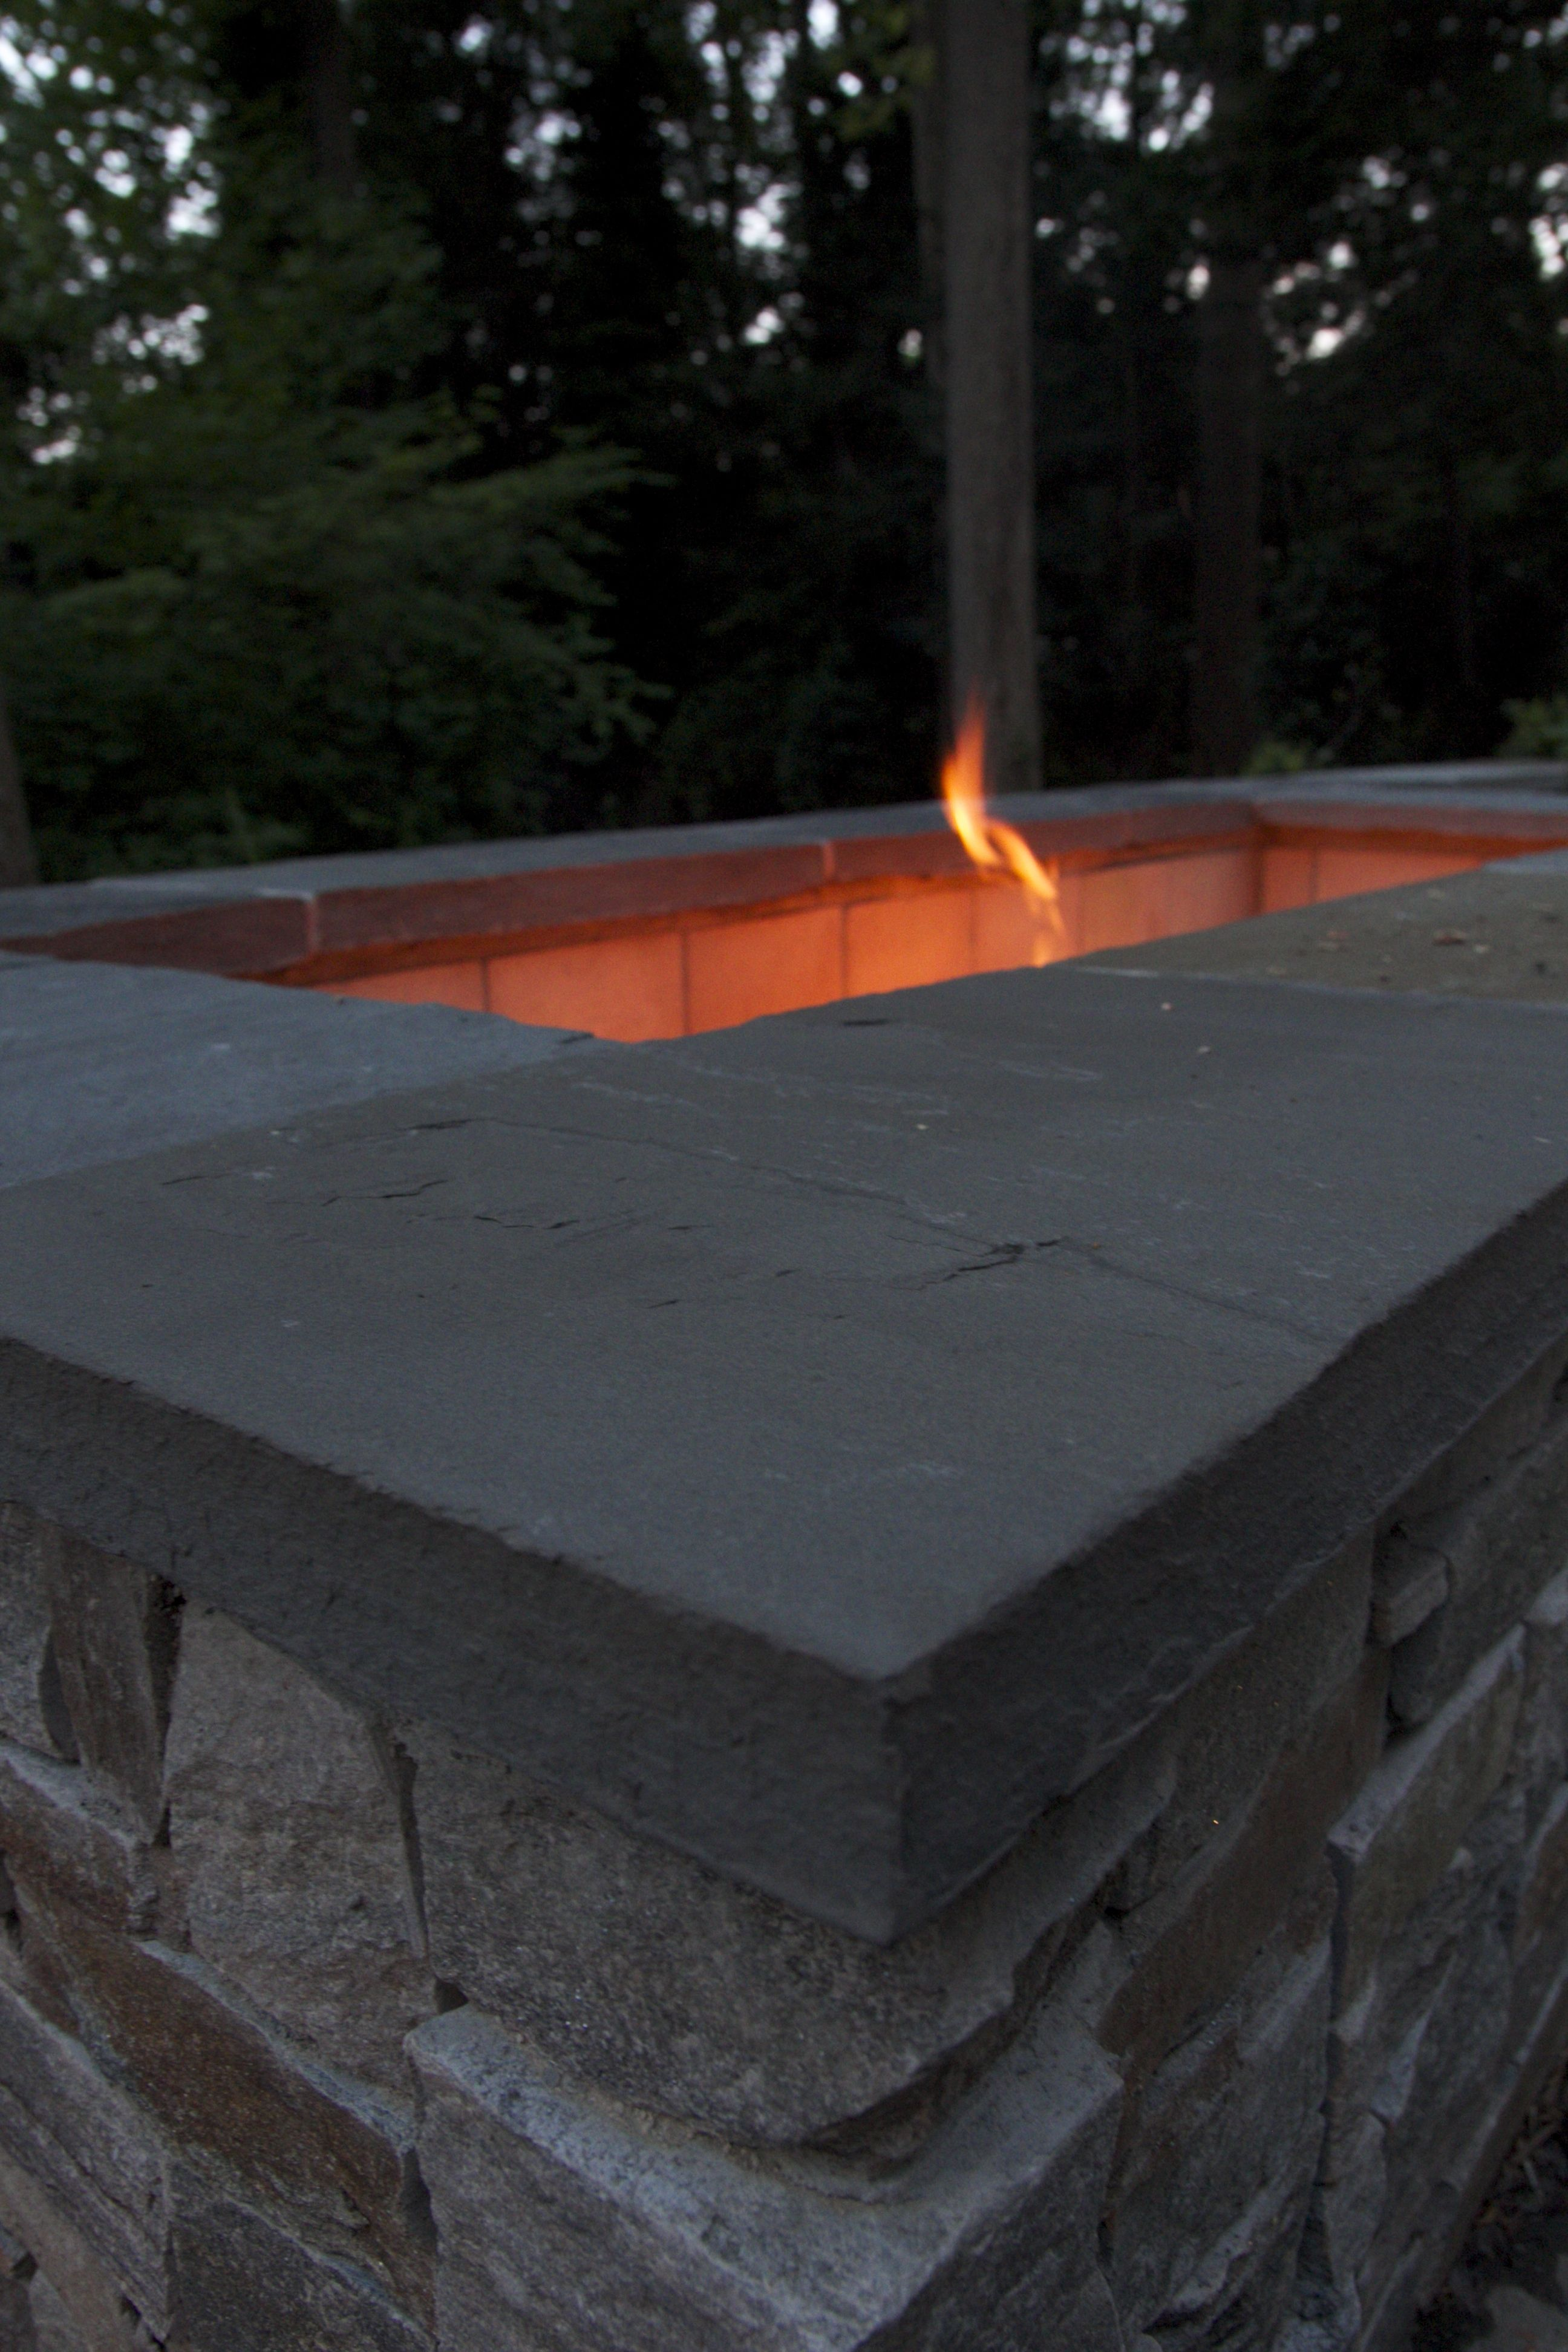 the soft glow of the stone fire pit creates a calm ambiance at night